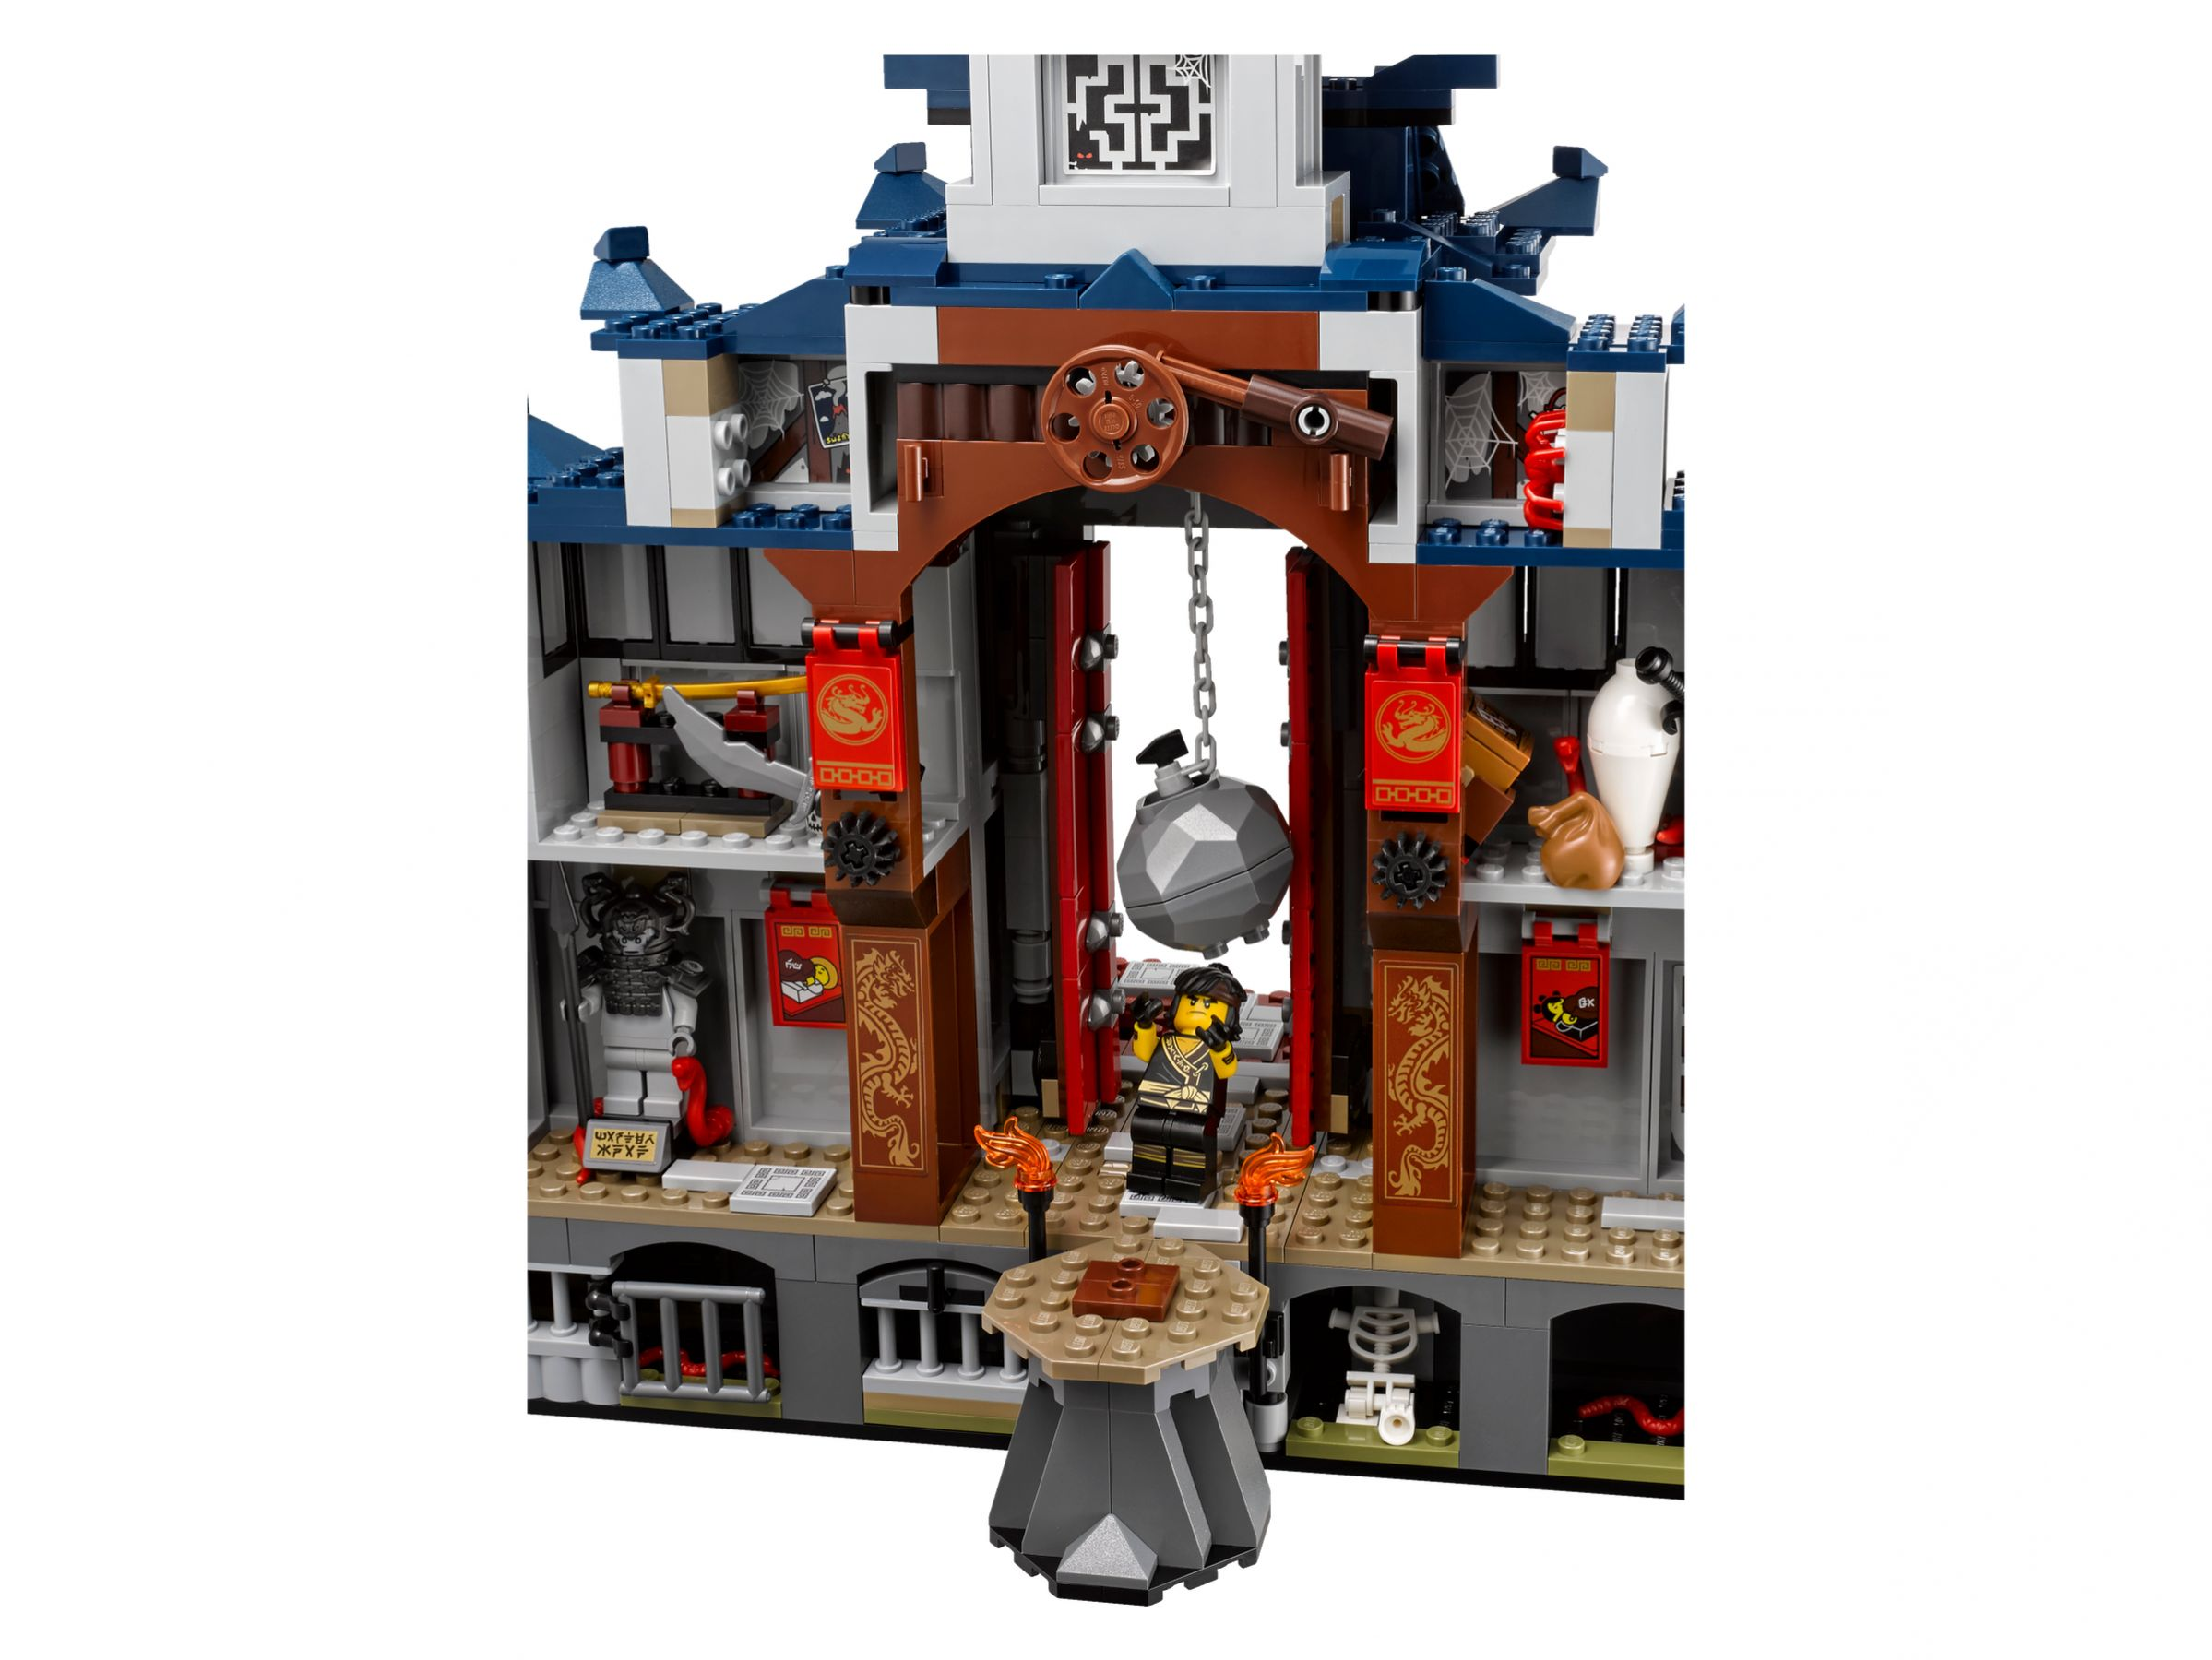 LEGO The LEGO Ninjago Movie 70617 Ultimativ ultimatives Tempel-Versteck LEGO_70617_alt6.jpg